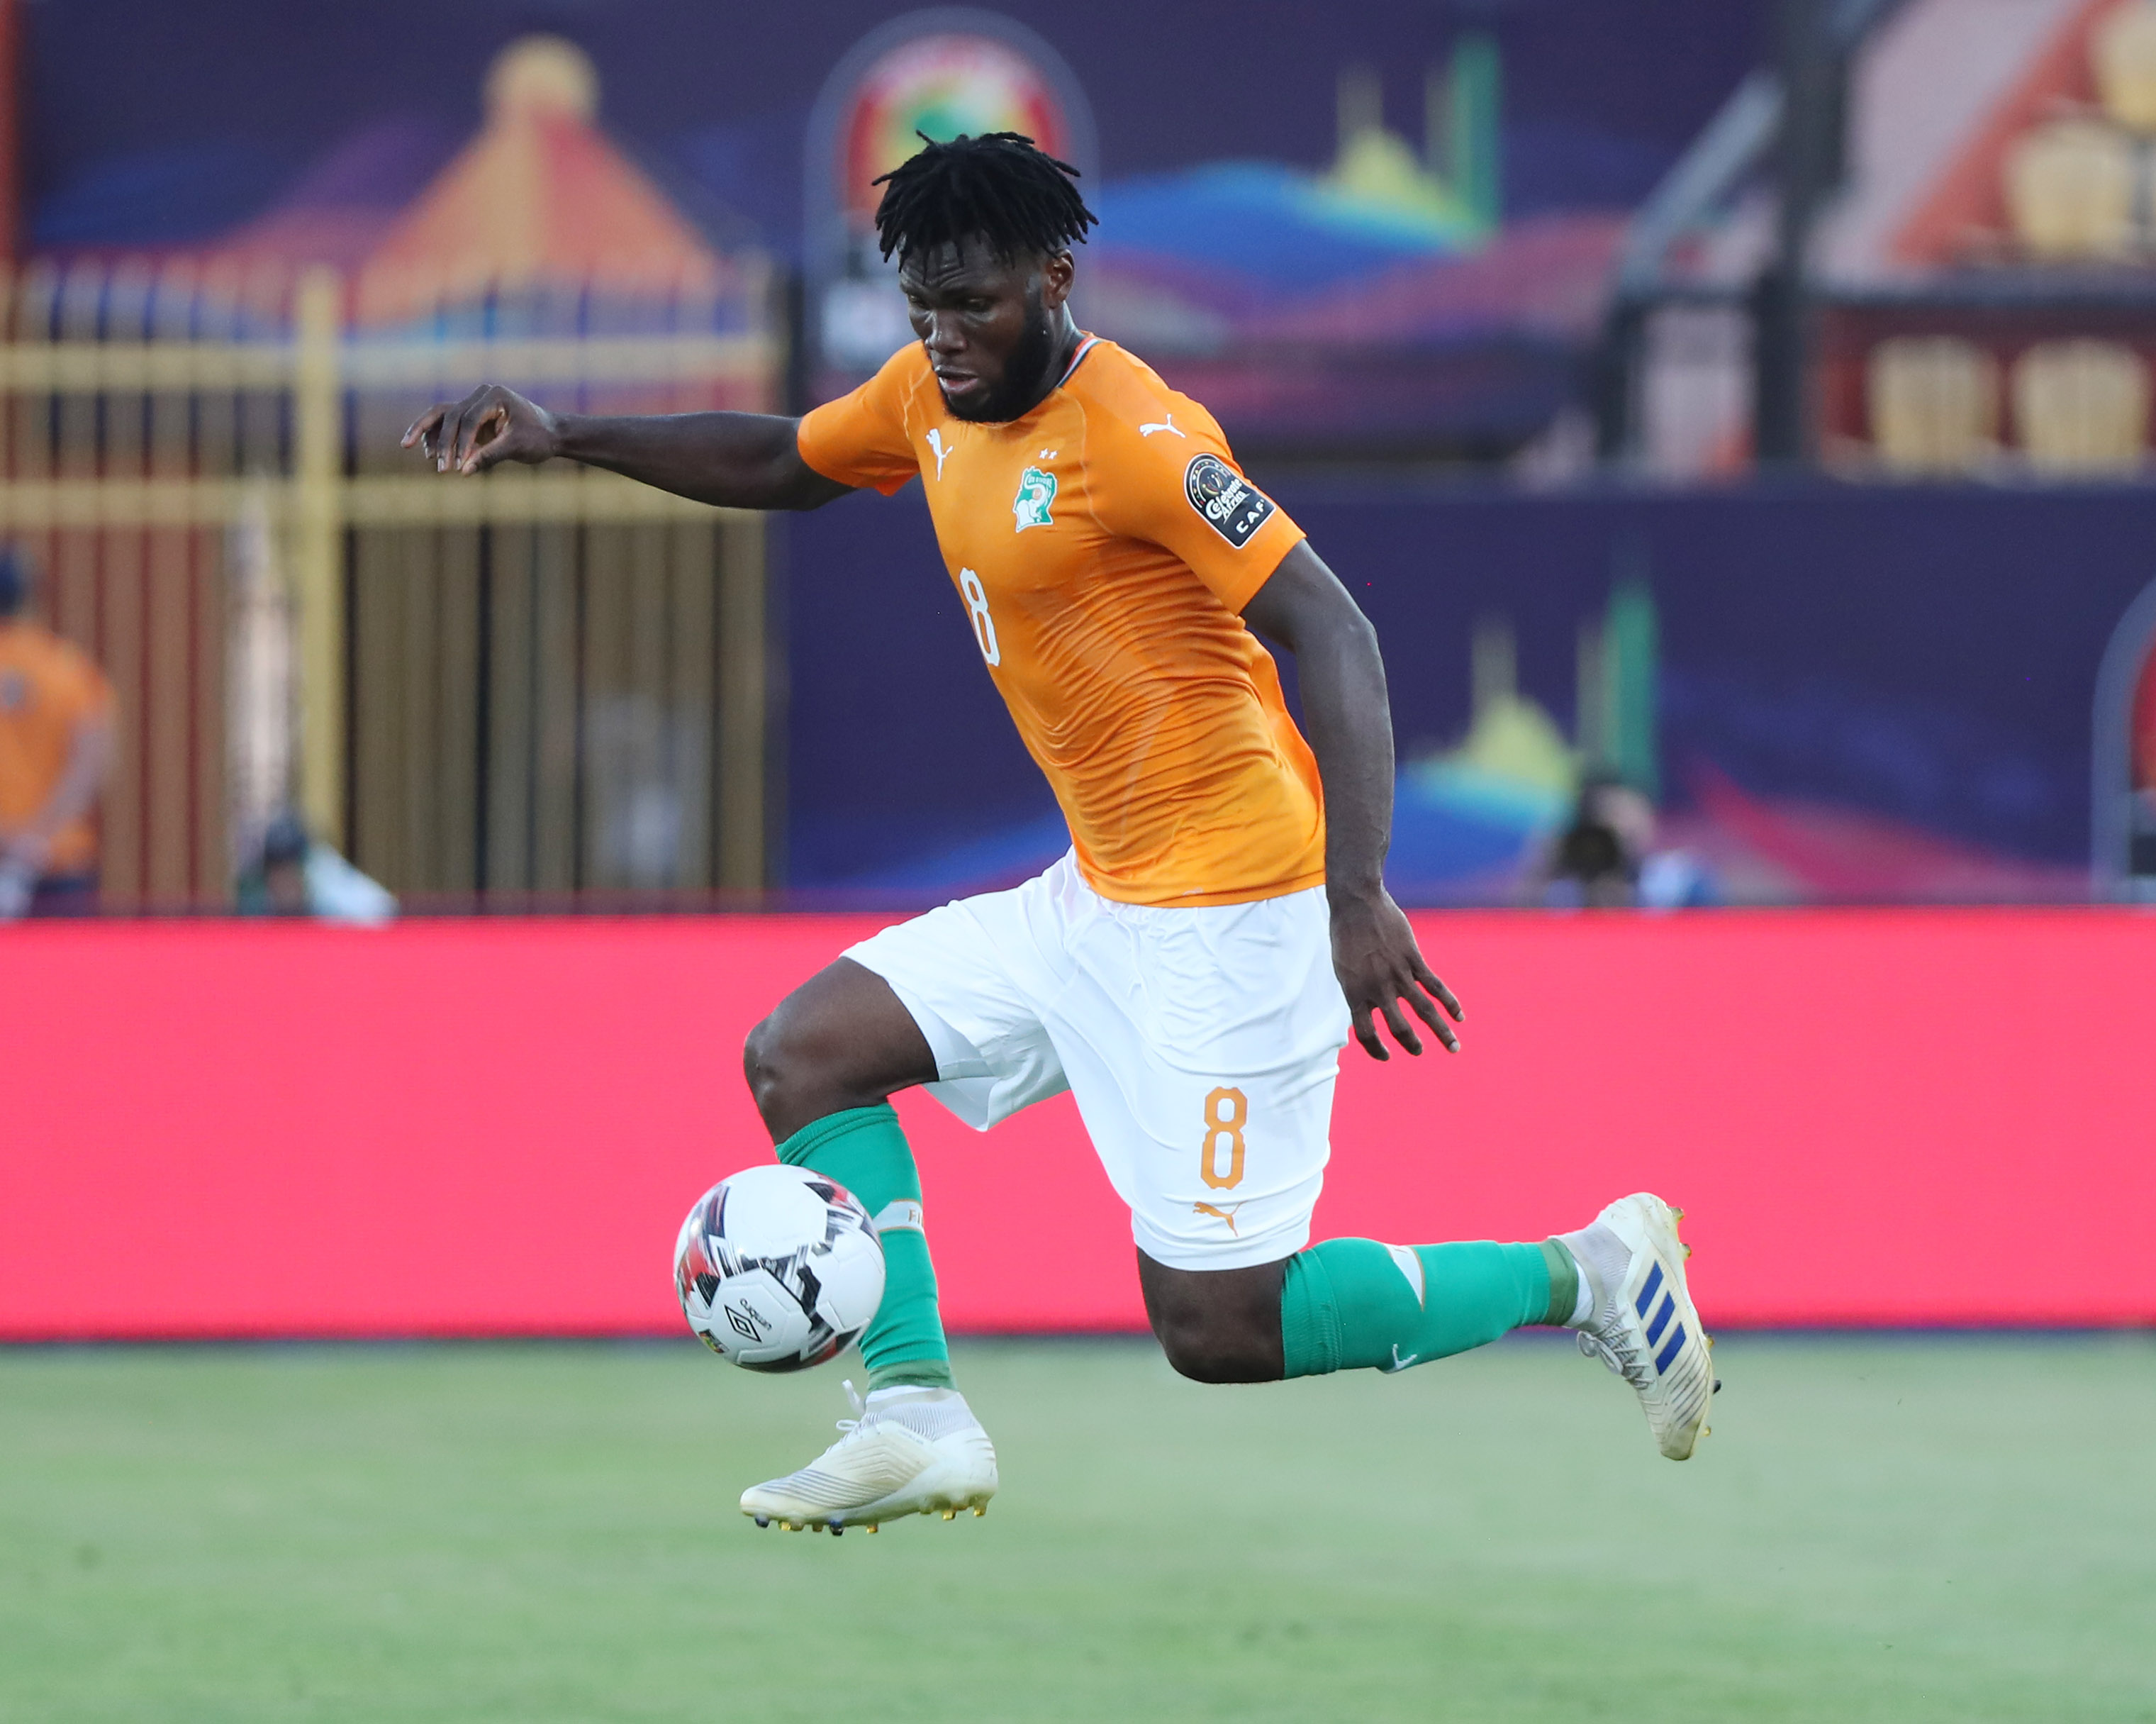 5 African Players to watch at the Olympics